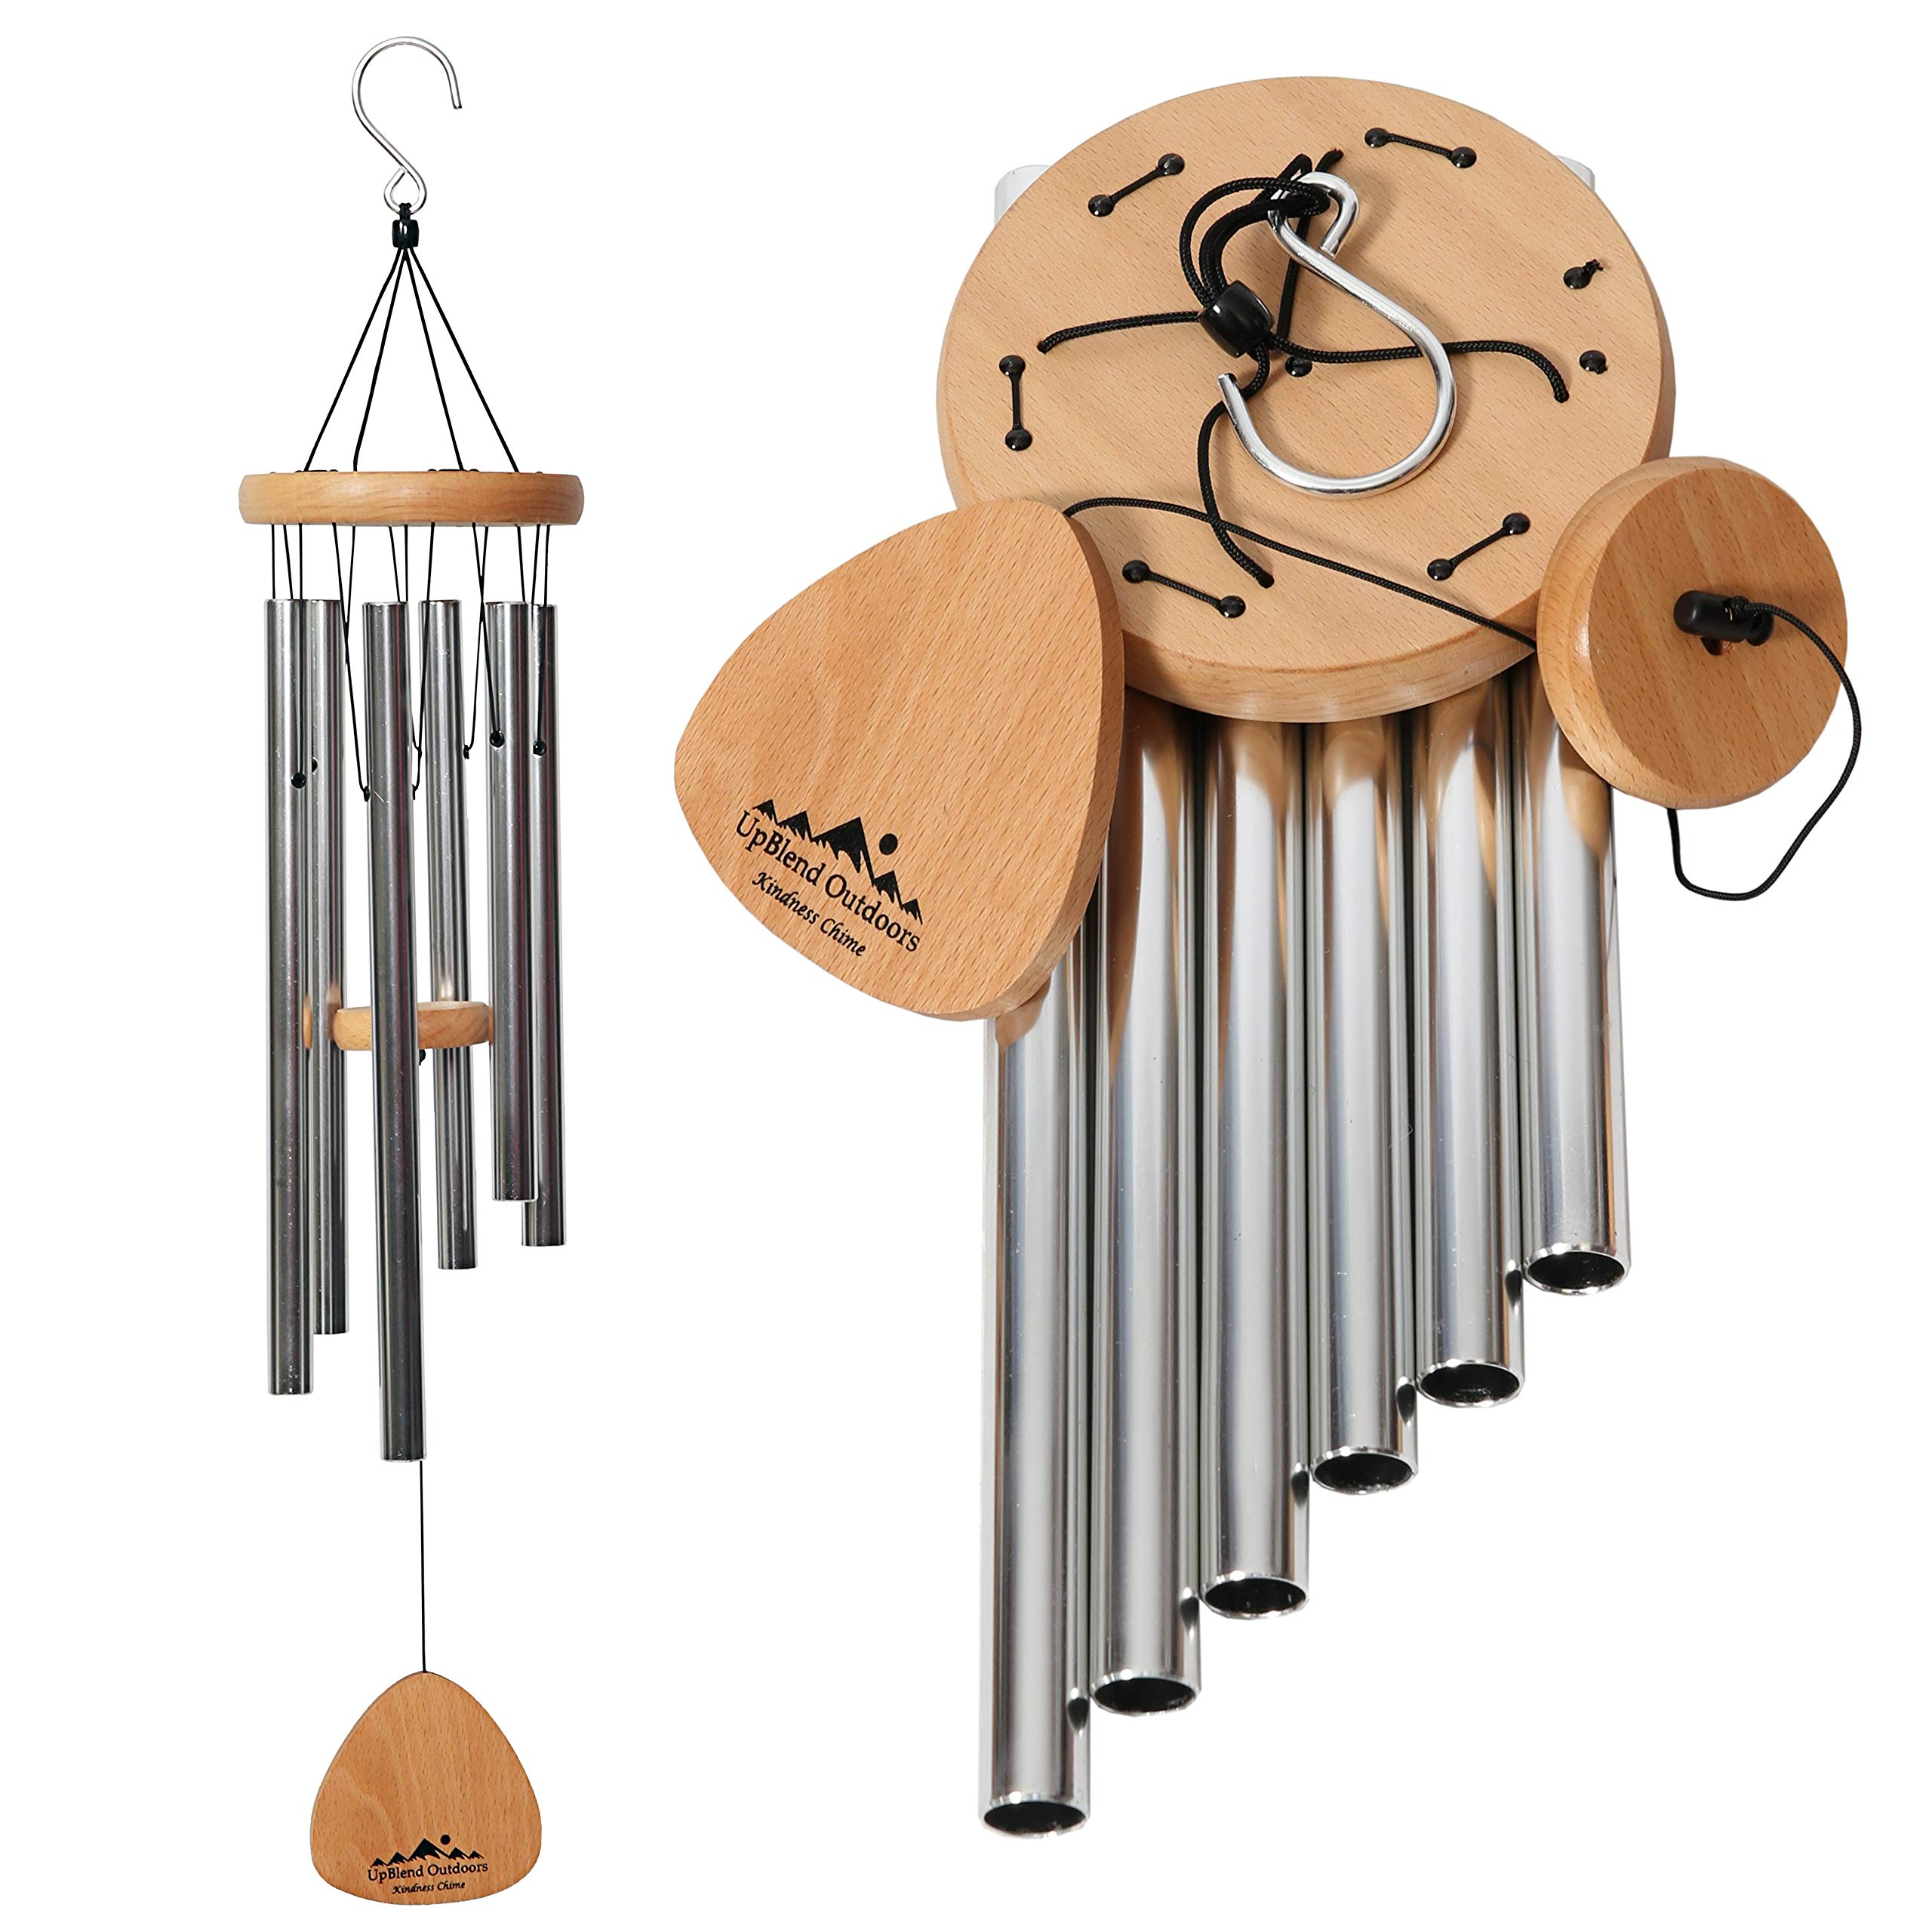 UpBlend Outdoors Wind Chimes for People who Like Their Neighbors 2 - an Amazing Addition to a Patio, Porch, Garden, or Backyard - 29'' Total Length.